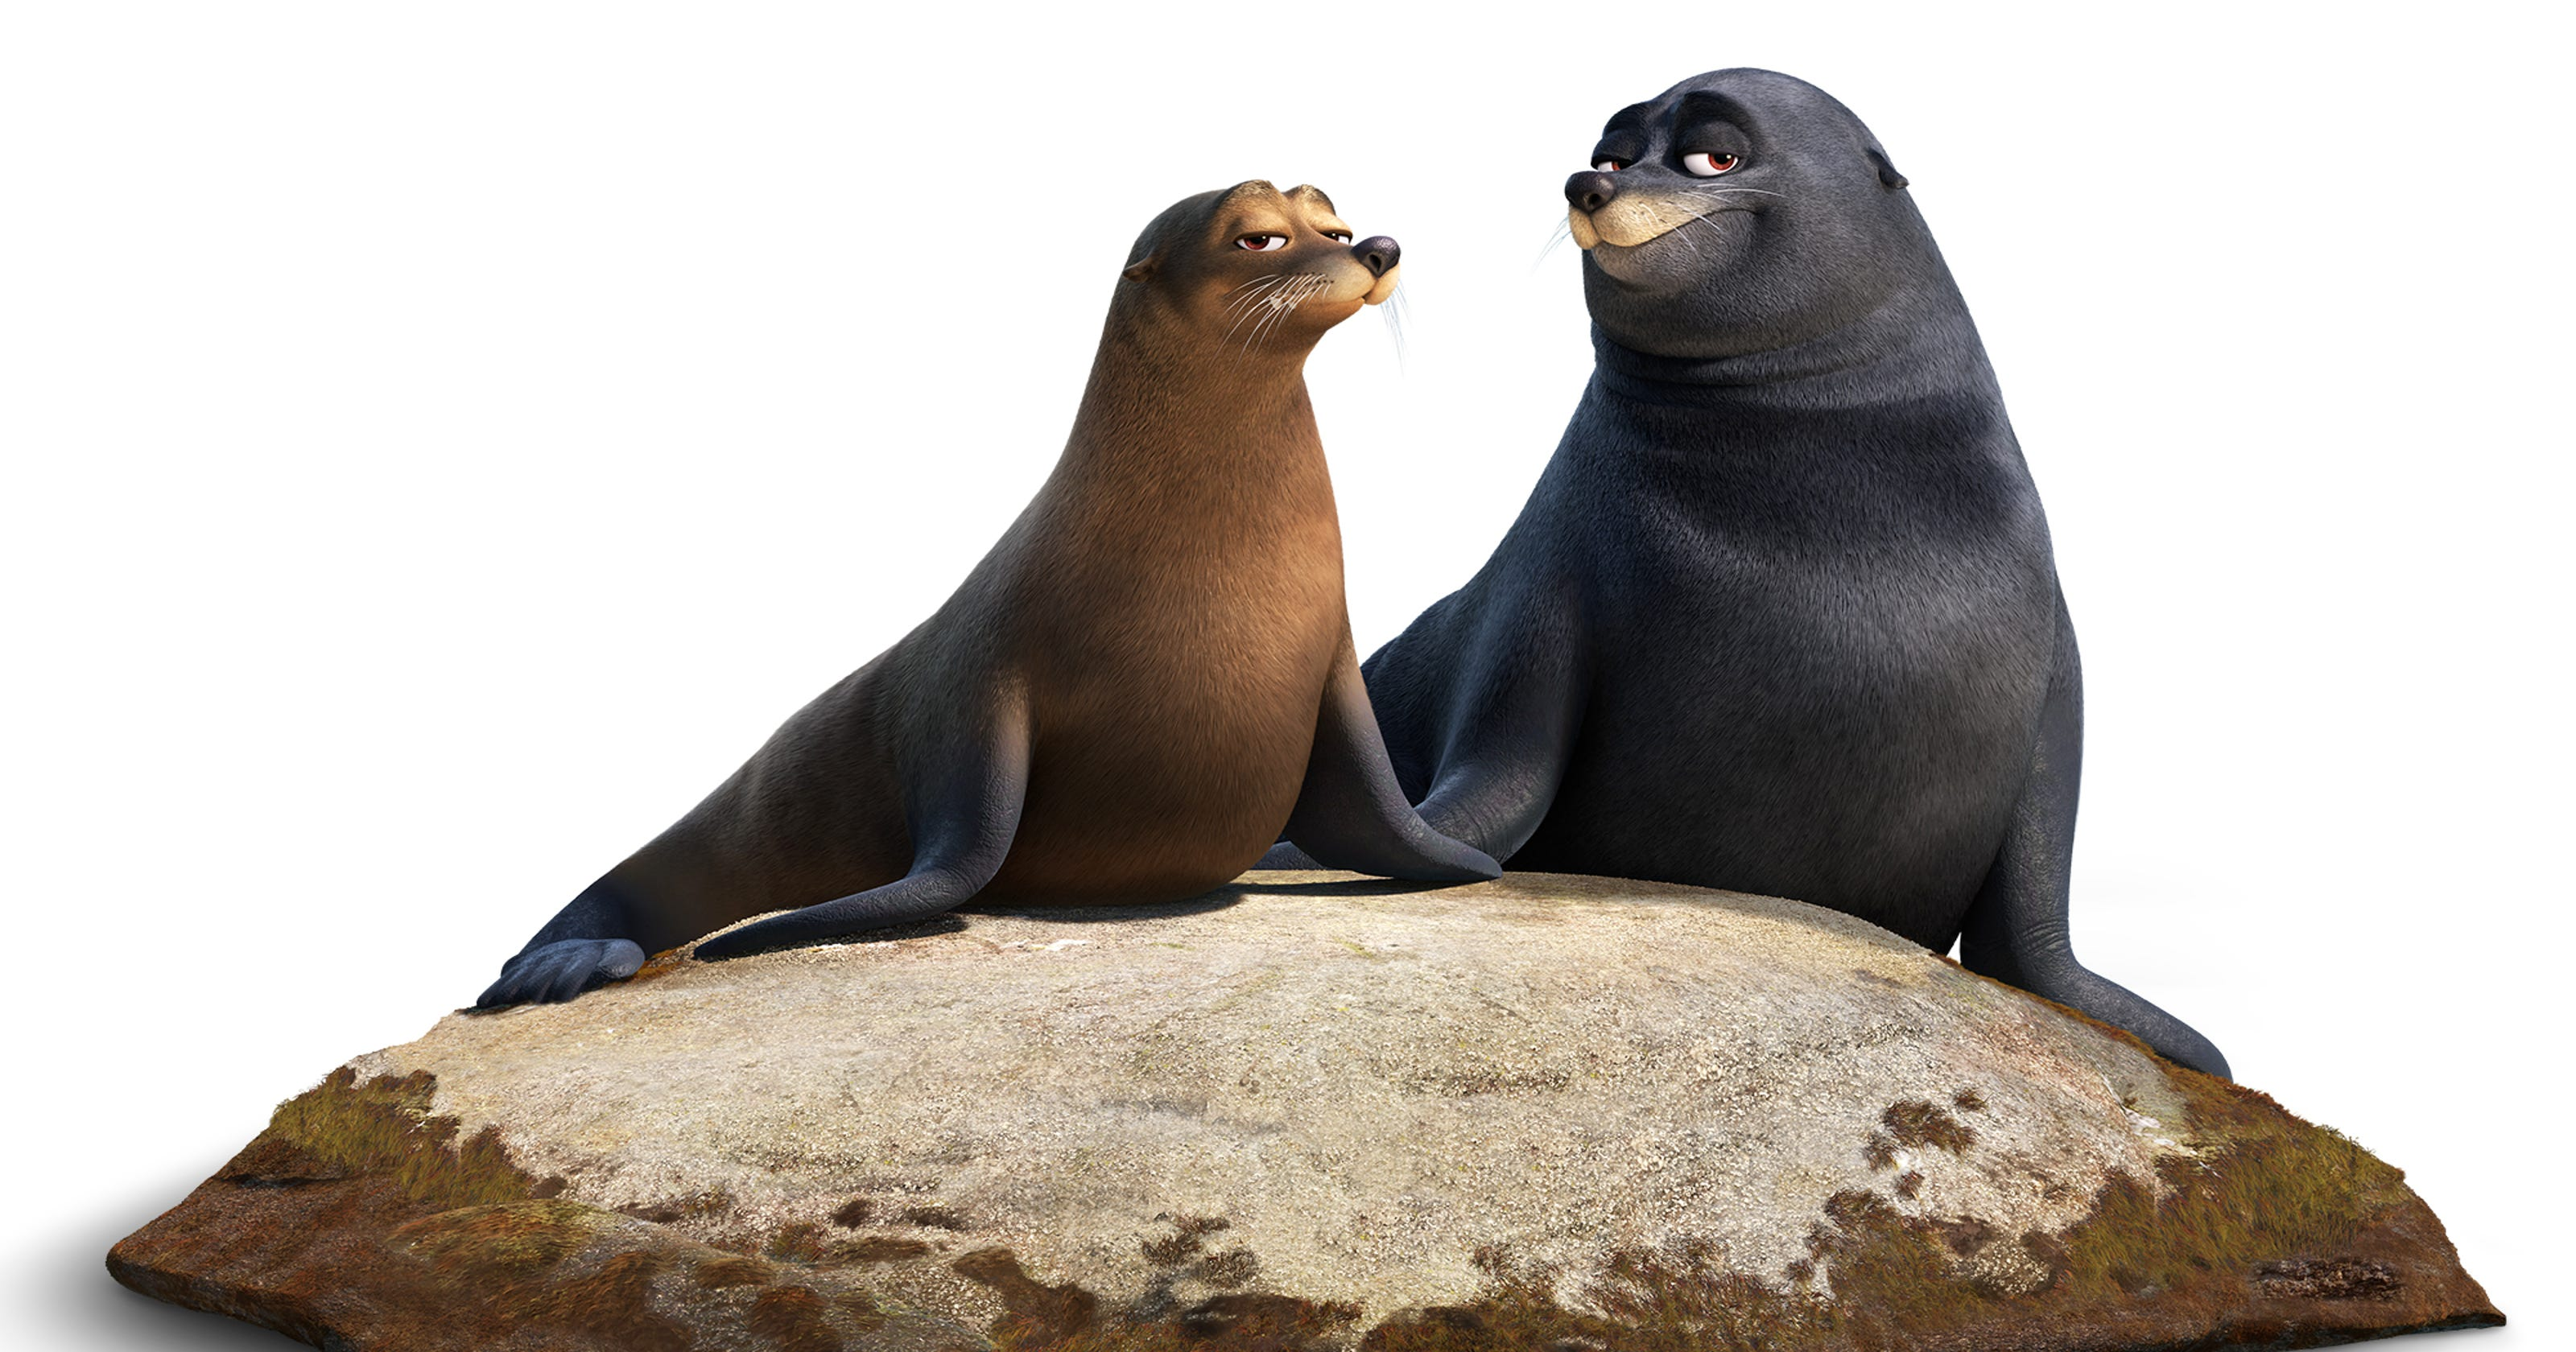 Sea lions and loons and otters! 'Finding Dory' adds ocean ...